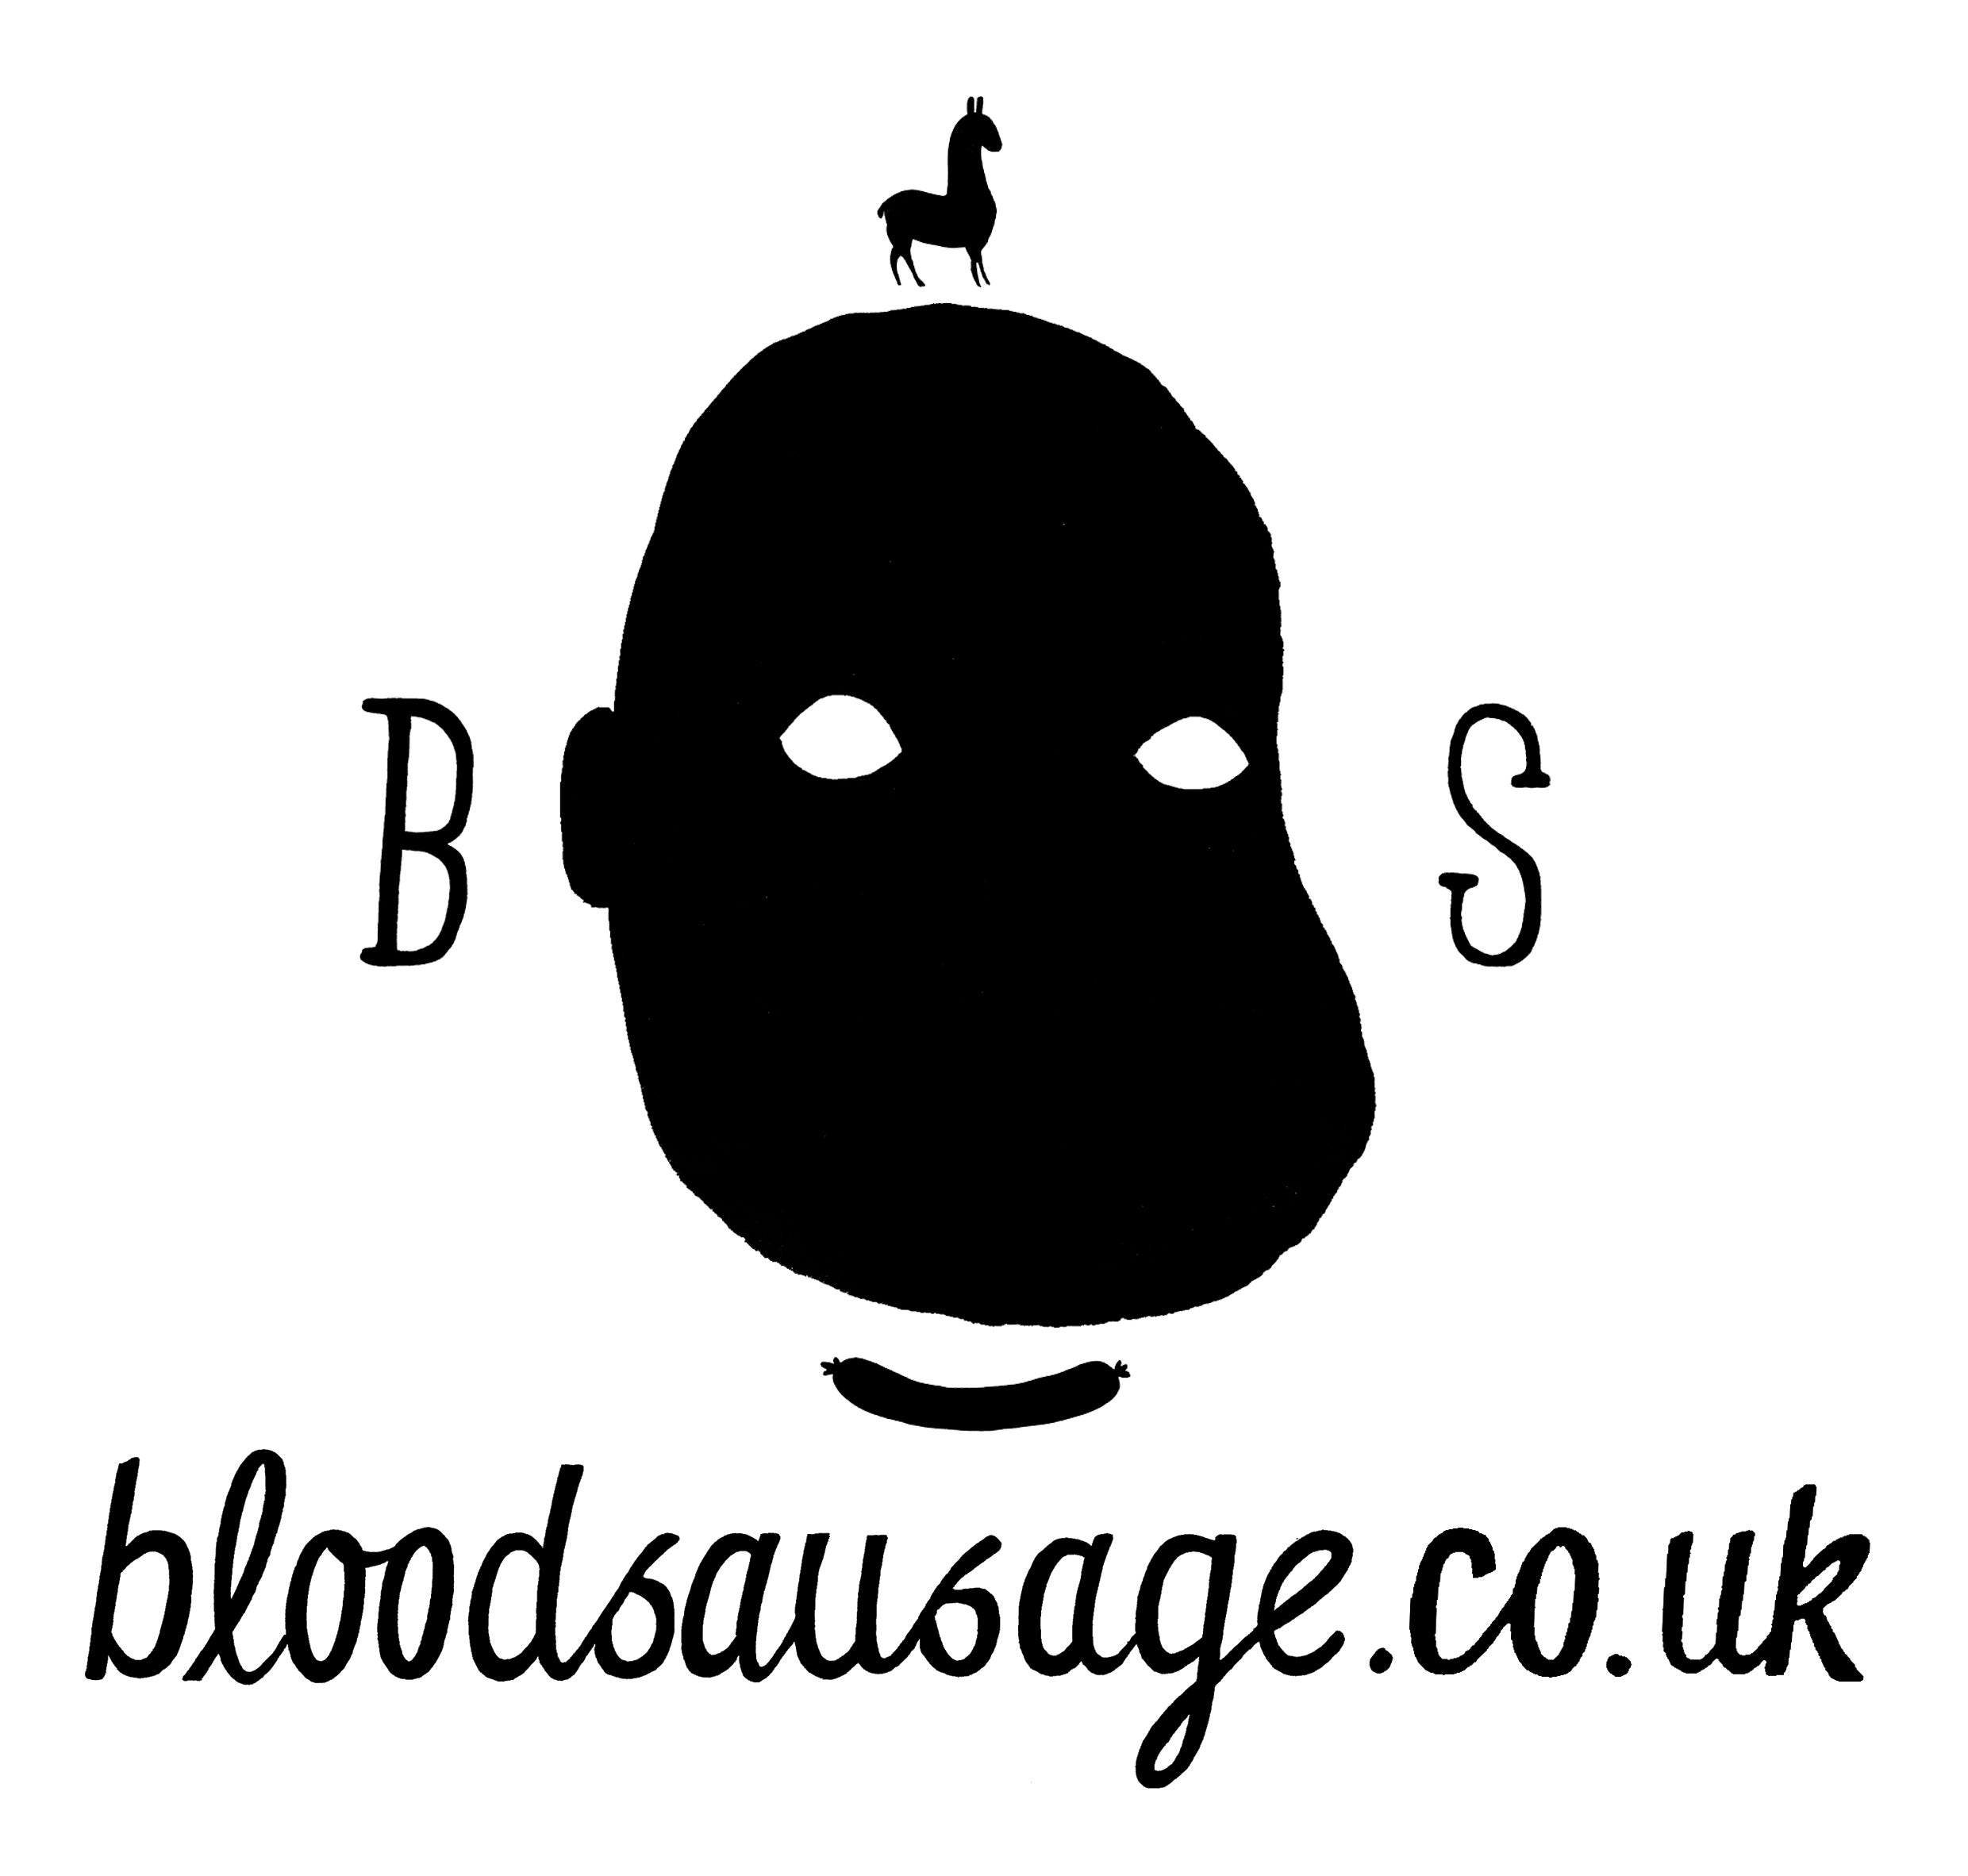 bloodsausage.co.uk